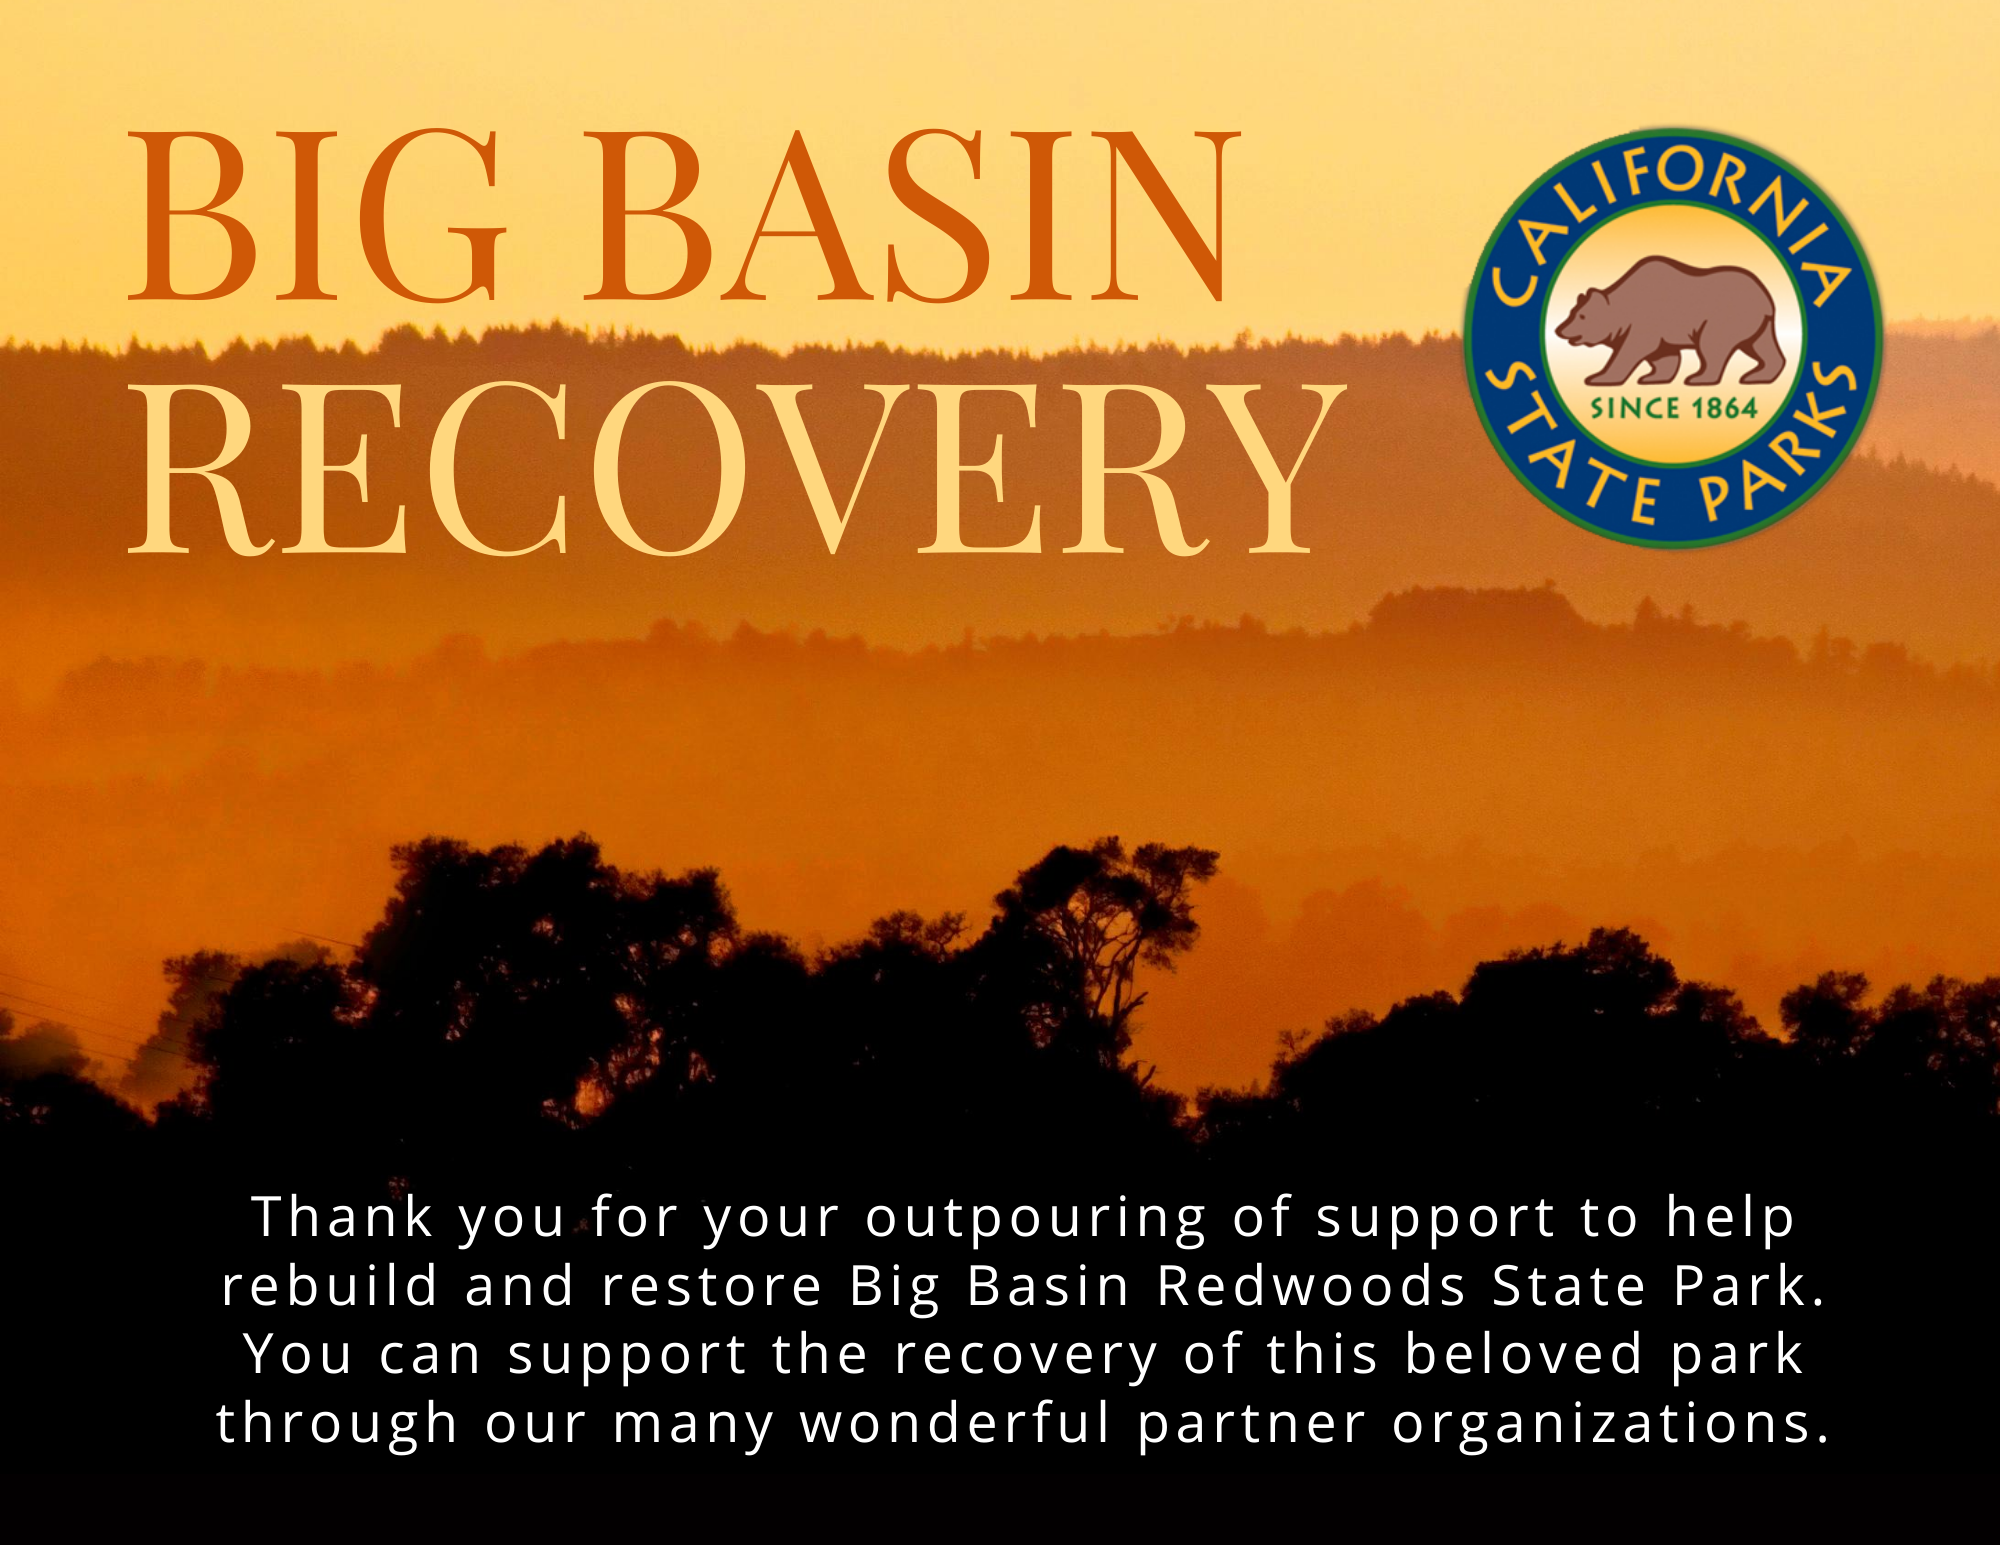 Big Basin Recovery page welcome image with fiery mountain landscape background and white text that reads: Thank you for your outpouring of support to help rebuild and restore Big Basin Redwoods State Park. You can help support the recovery of this beloved park through our many wonderful partner organizations.